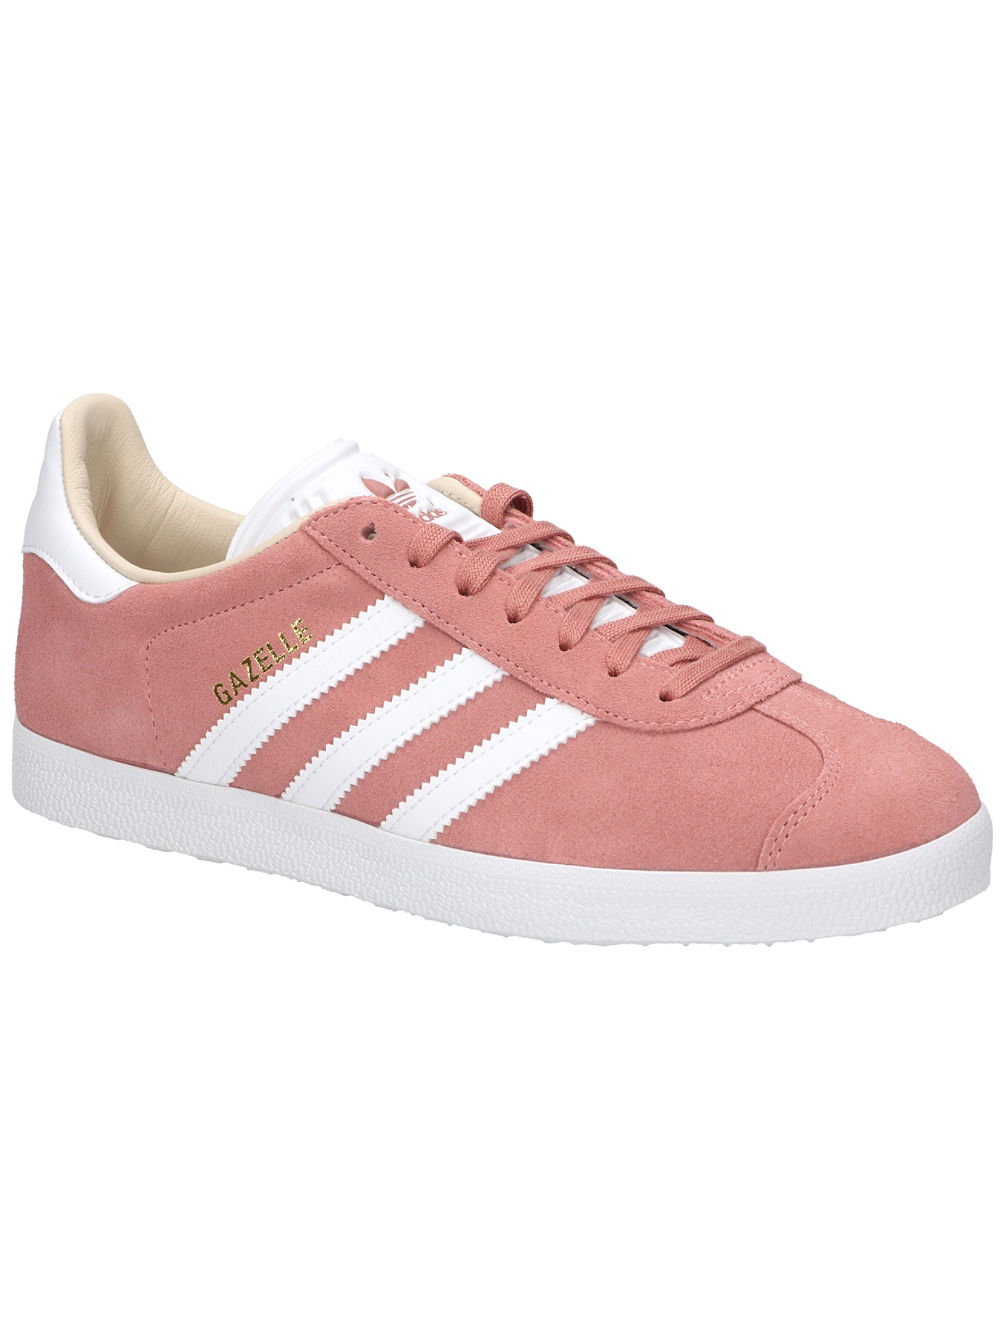 Gazelle W Sneakers Women